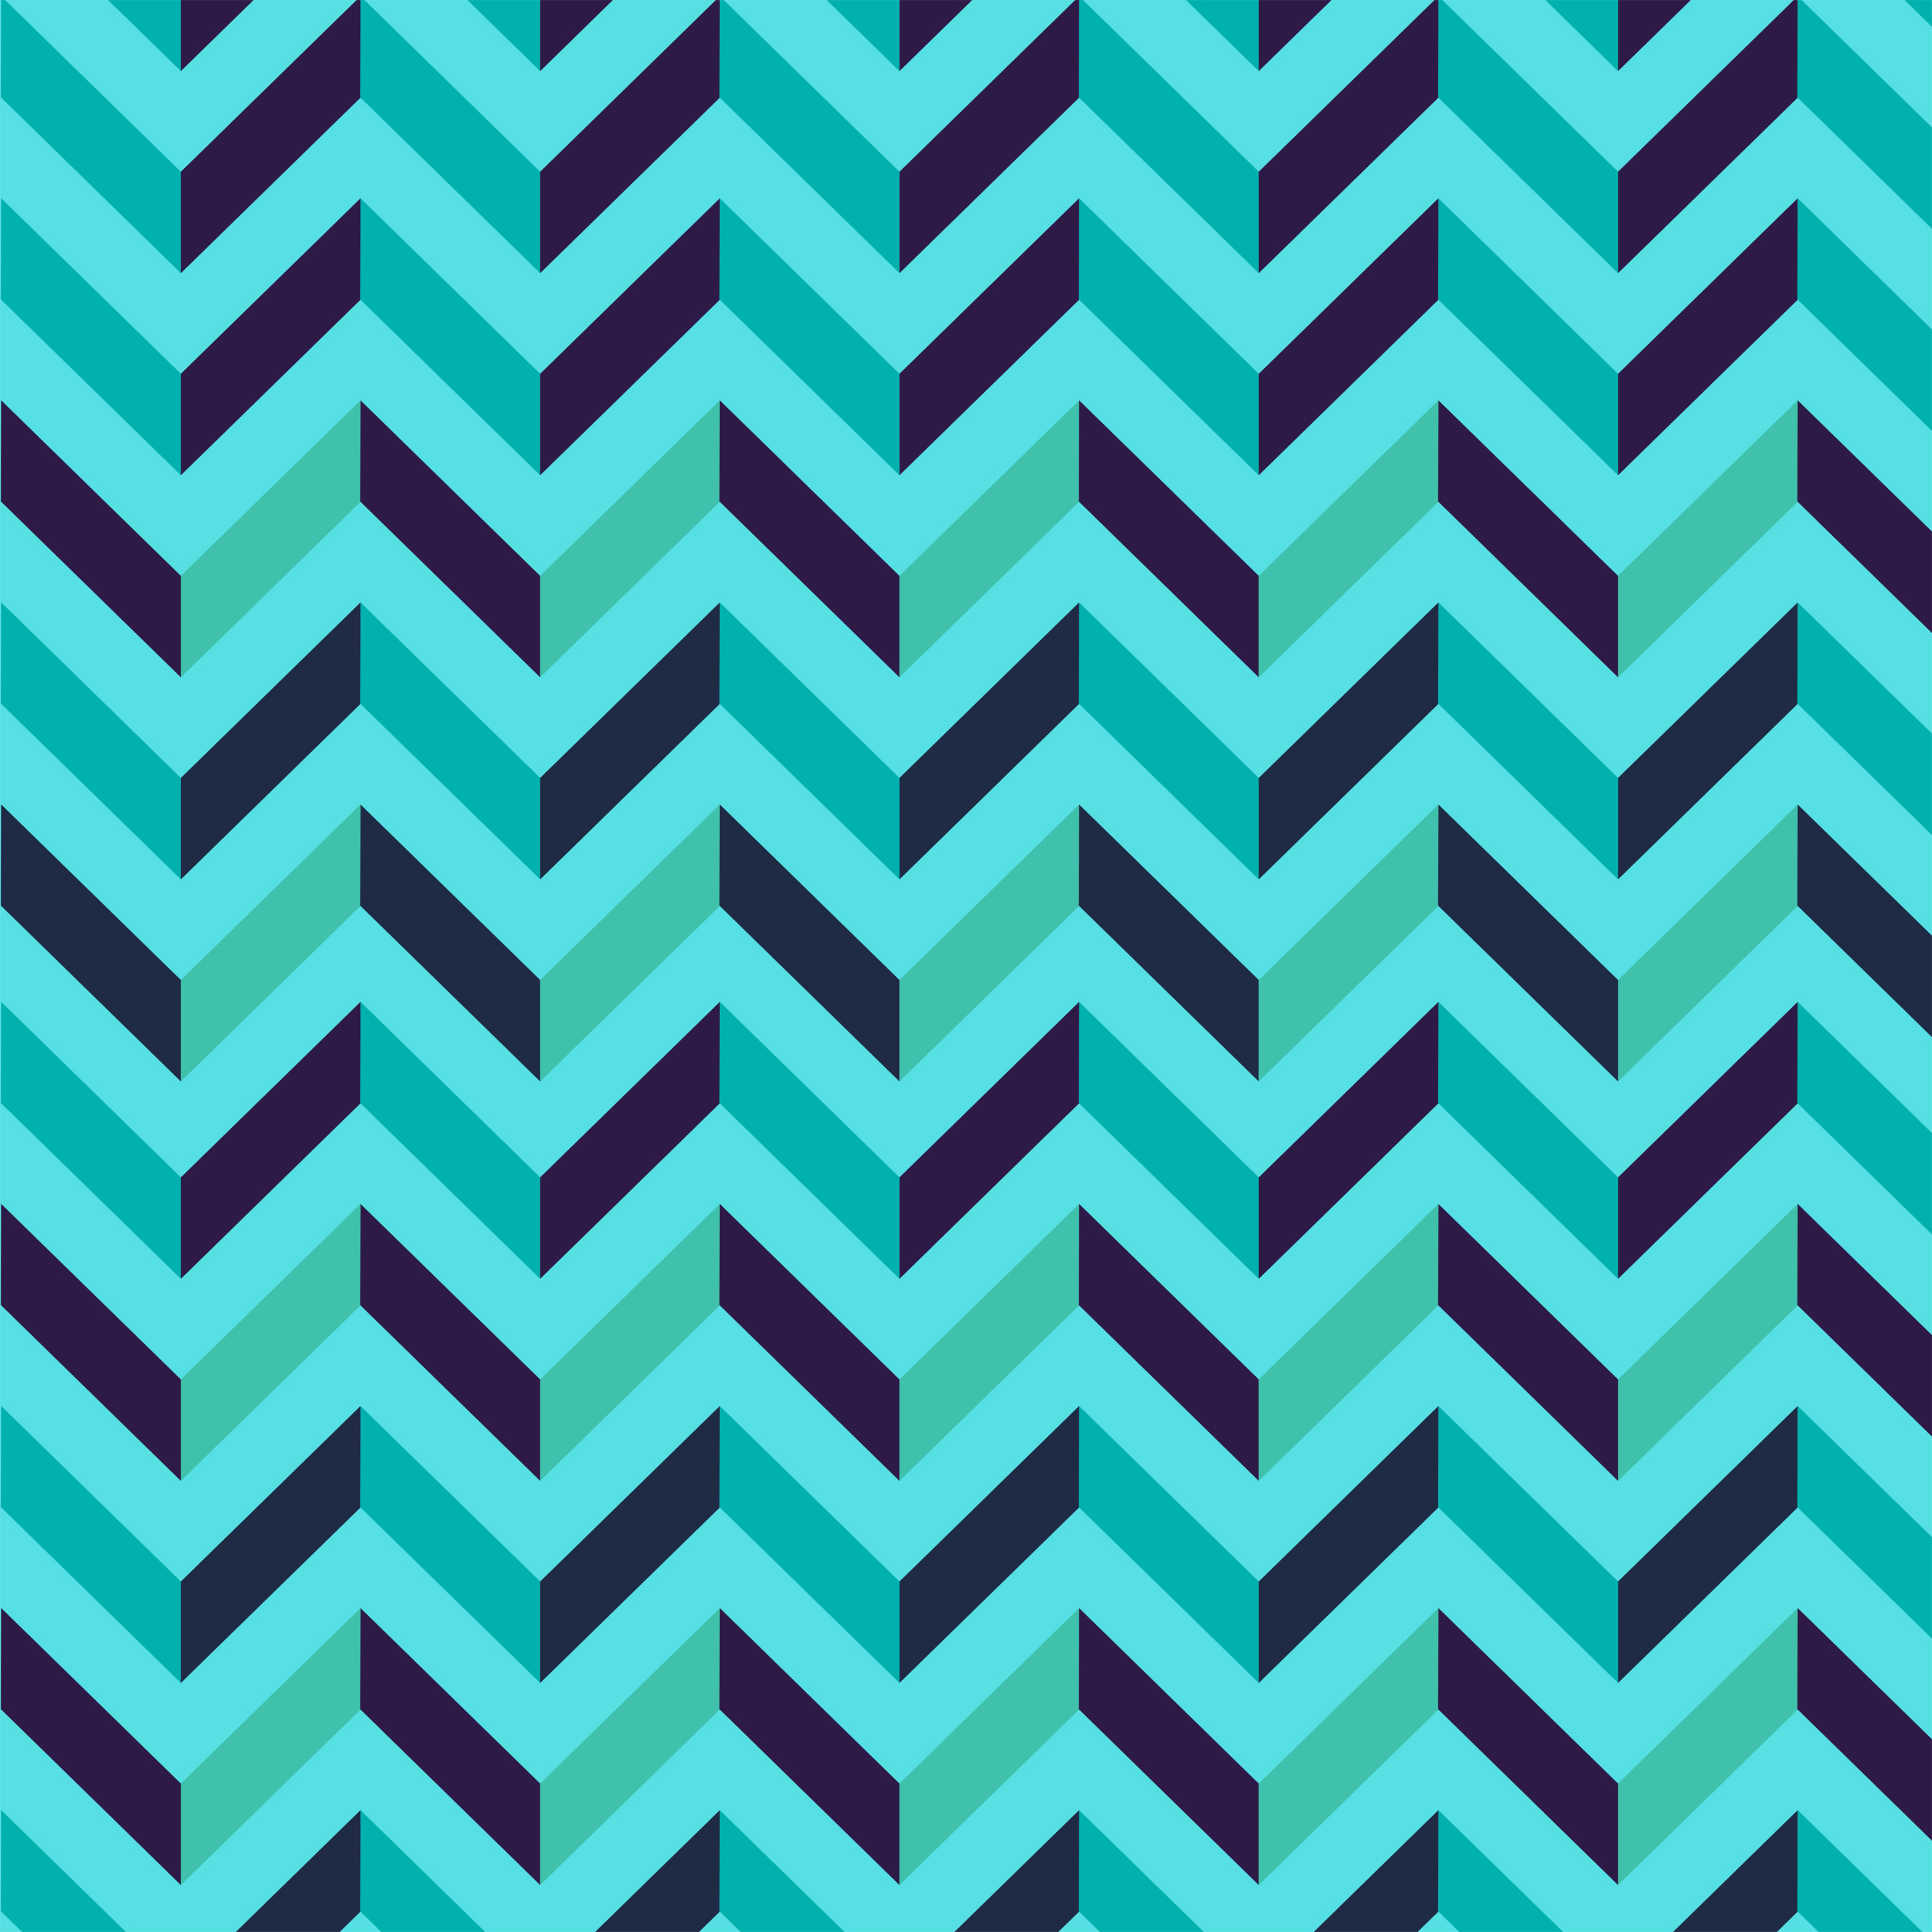 Cold-colored pattern background photo